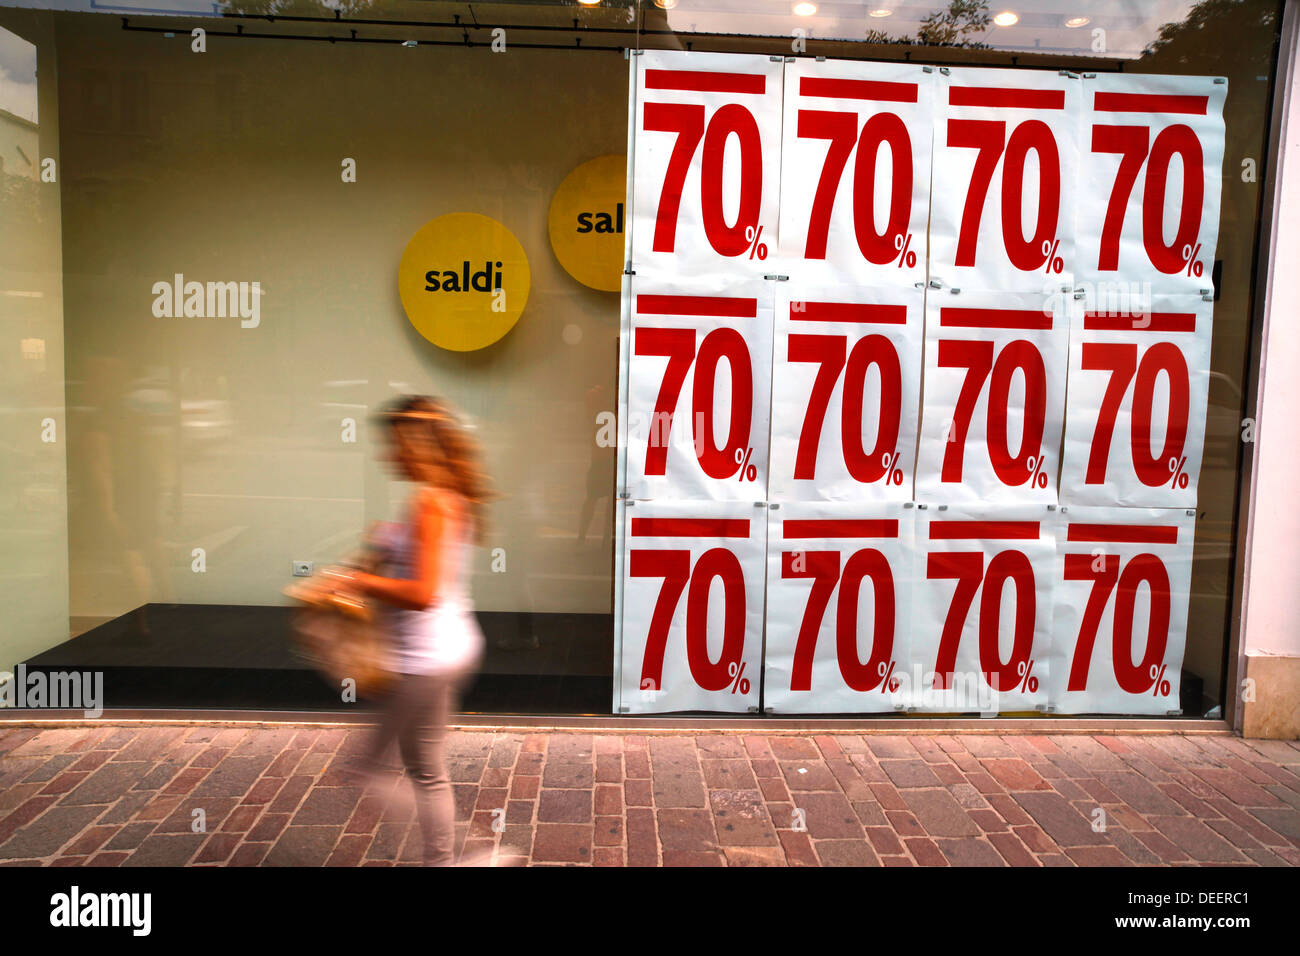 Seventy percent discount sale in a shop, Pescara, Italy. - Stock Image